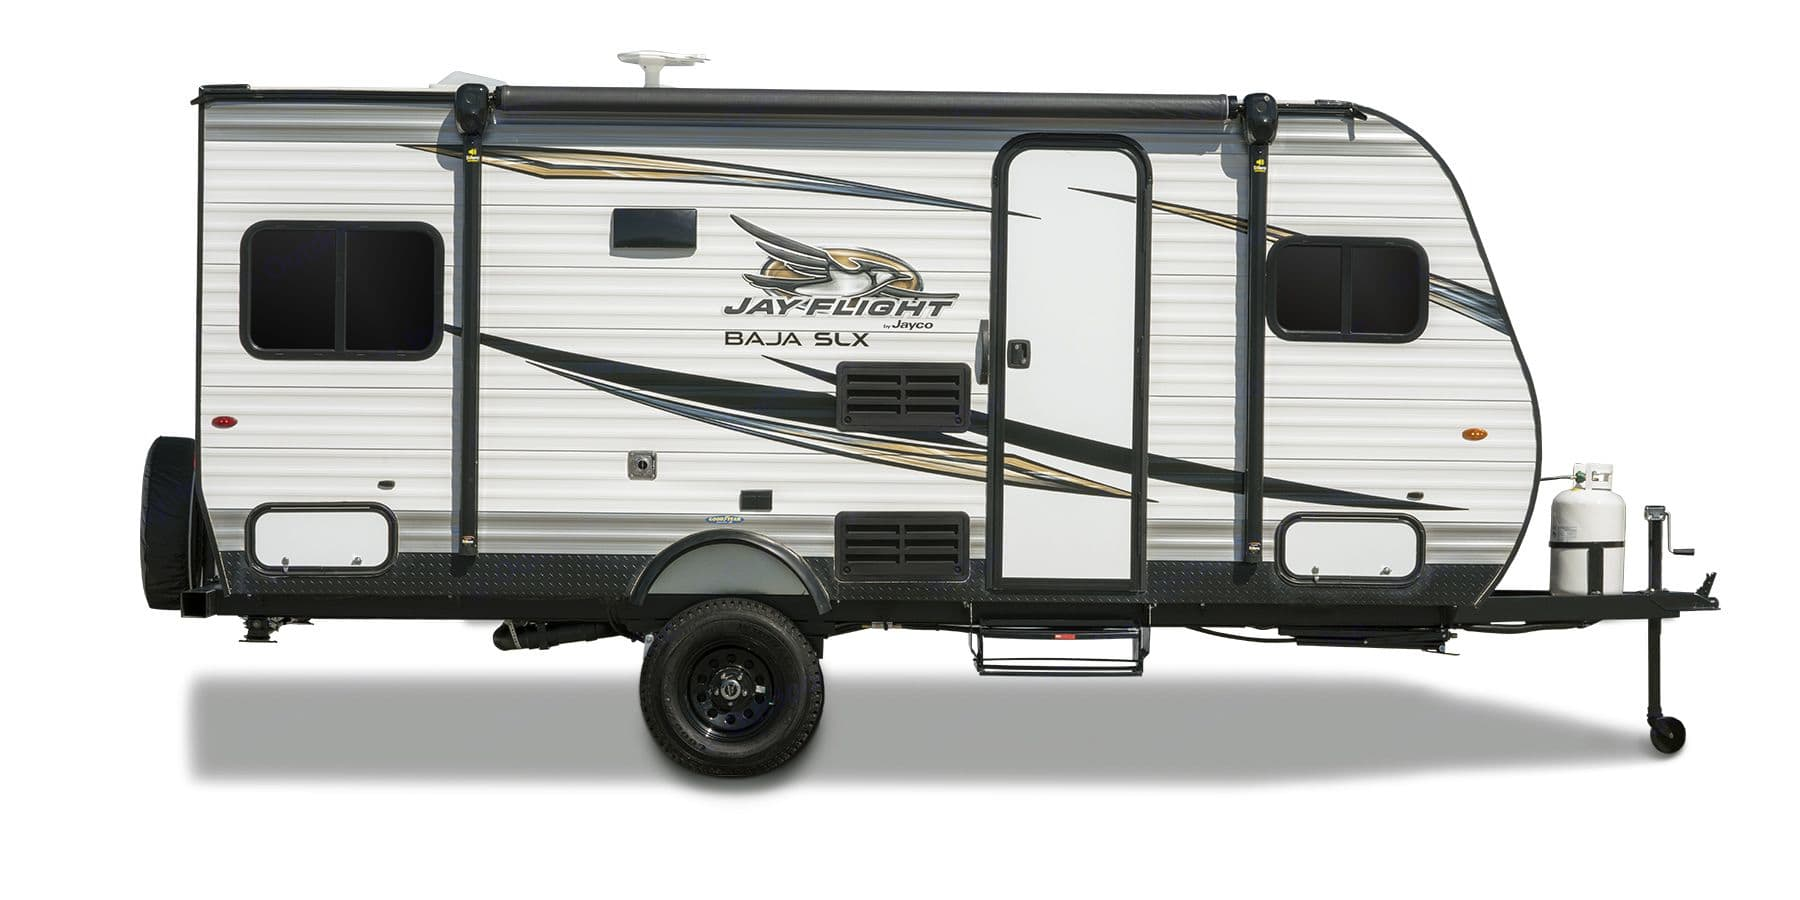 Everything you need in a small package! Great for camping, weekend getaway, or the long haul for multiple weeks! Sleeps 4 has kitchen, gas range,refrigerator,small table, full bathroom (sink toilet shower)this model has the off road package it's meant to me towed down that long dirt road and fit into those tighter campsites!!. Jayco Baja 2019